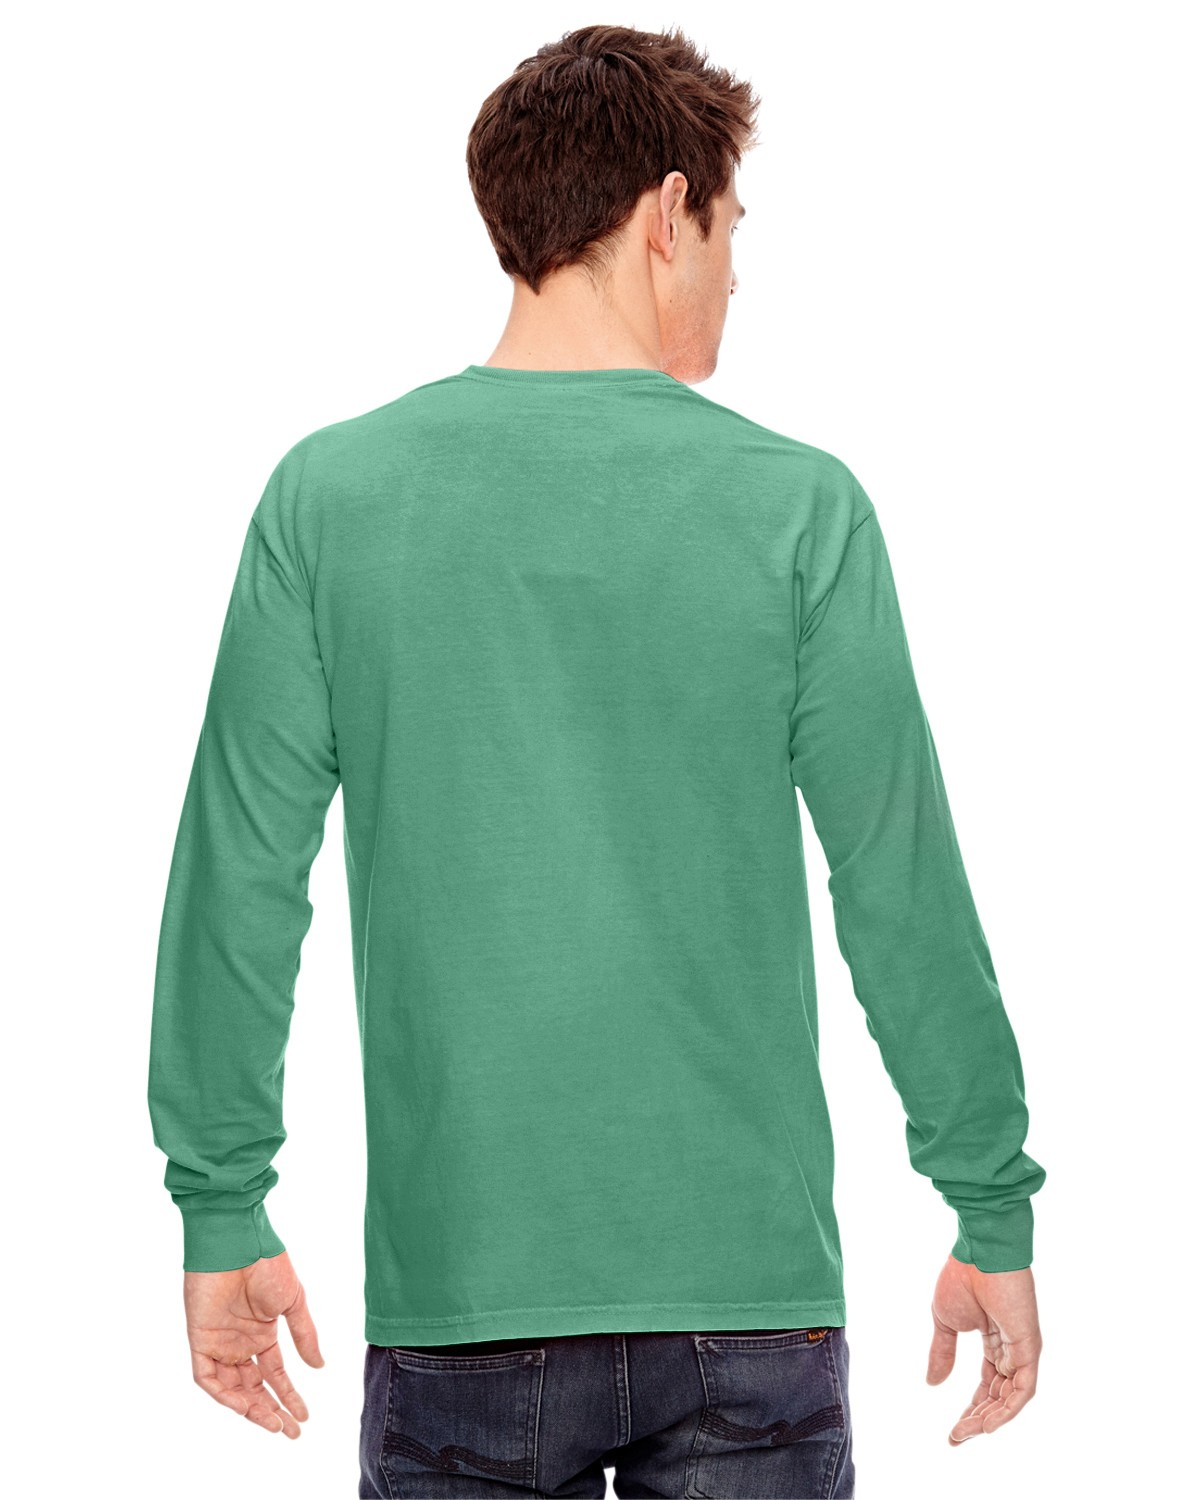 C6014 Comfort Colors ISLAND GREEN